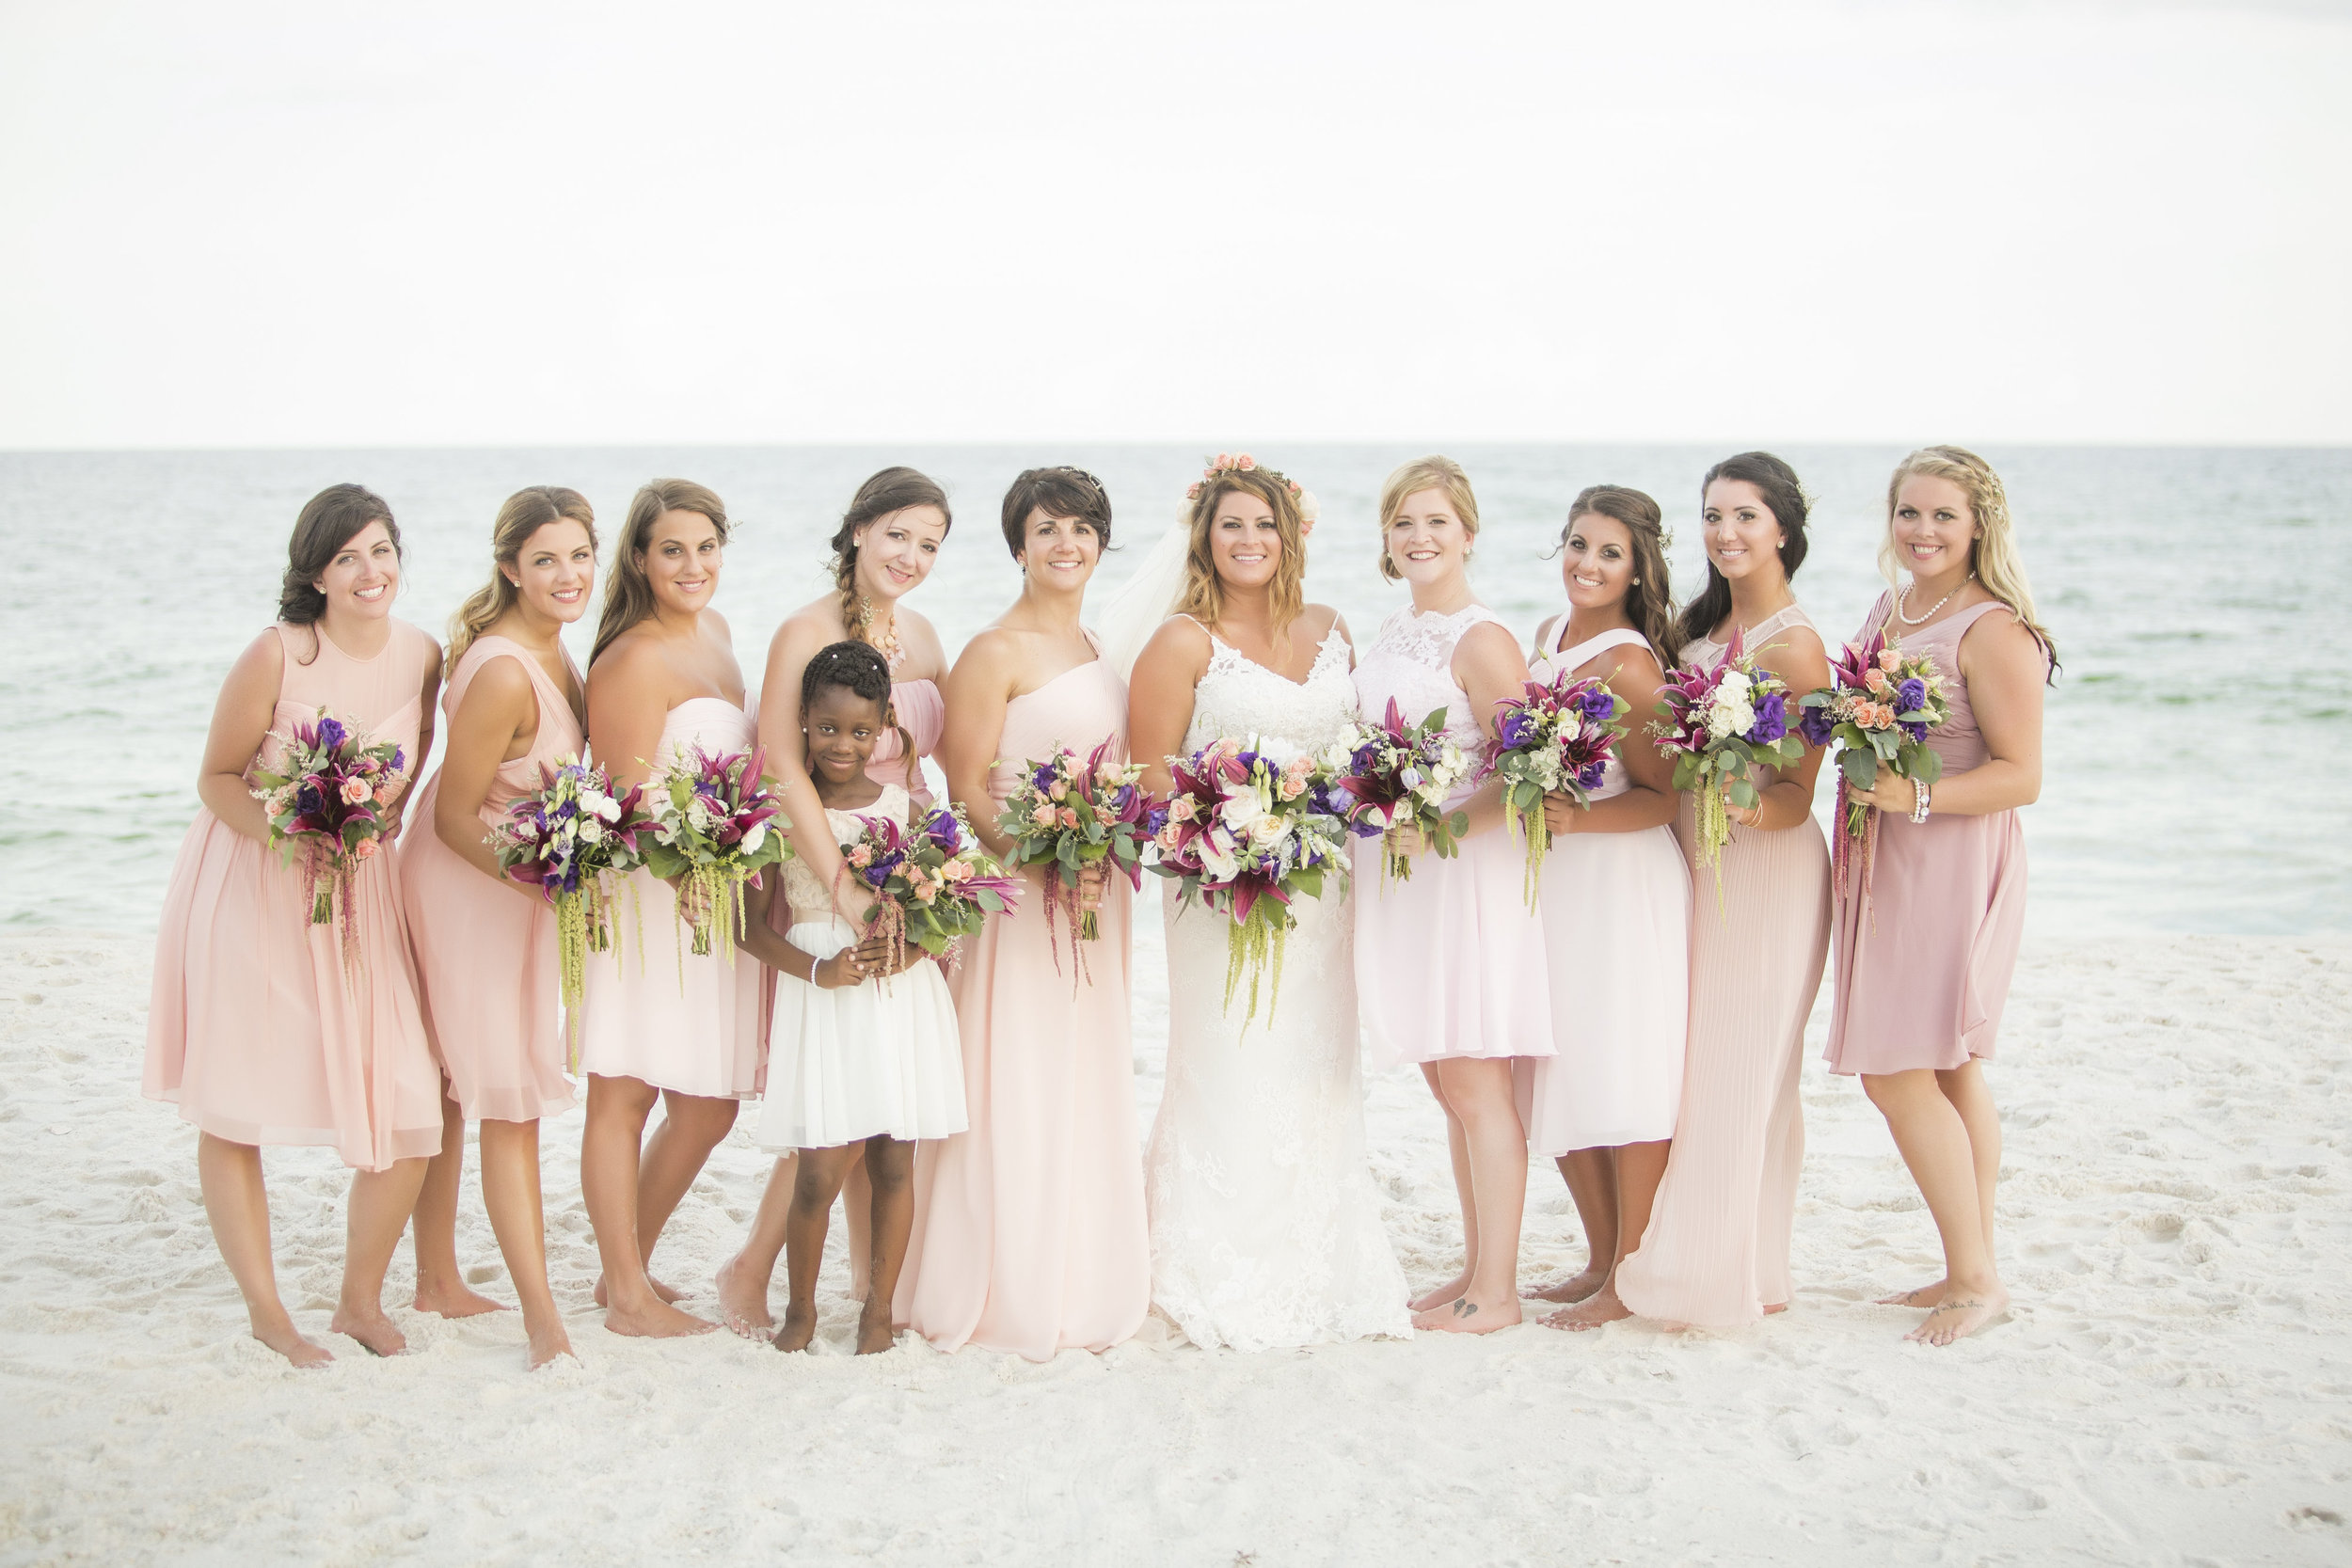 Blush, Rose and Eggplant Bohemian Beach Wedding on Pensacola Beach - Fiore of Pensacola, Grace and Serendipity, and Aislinn Kate Photography